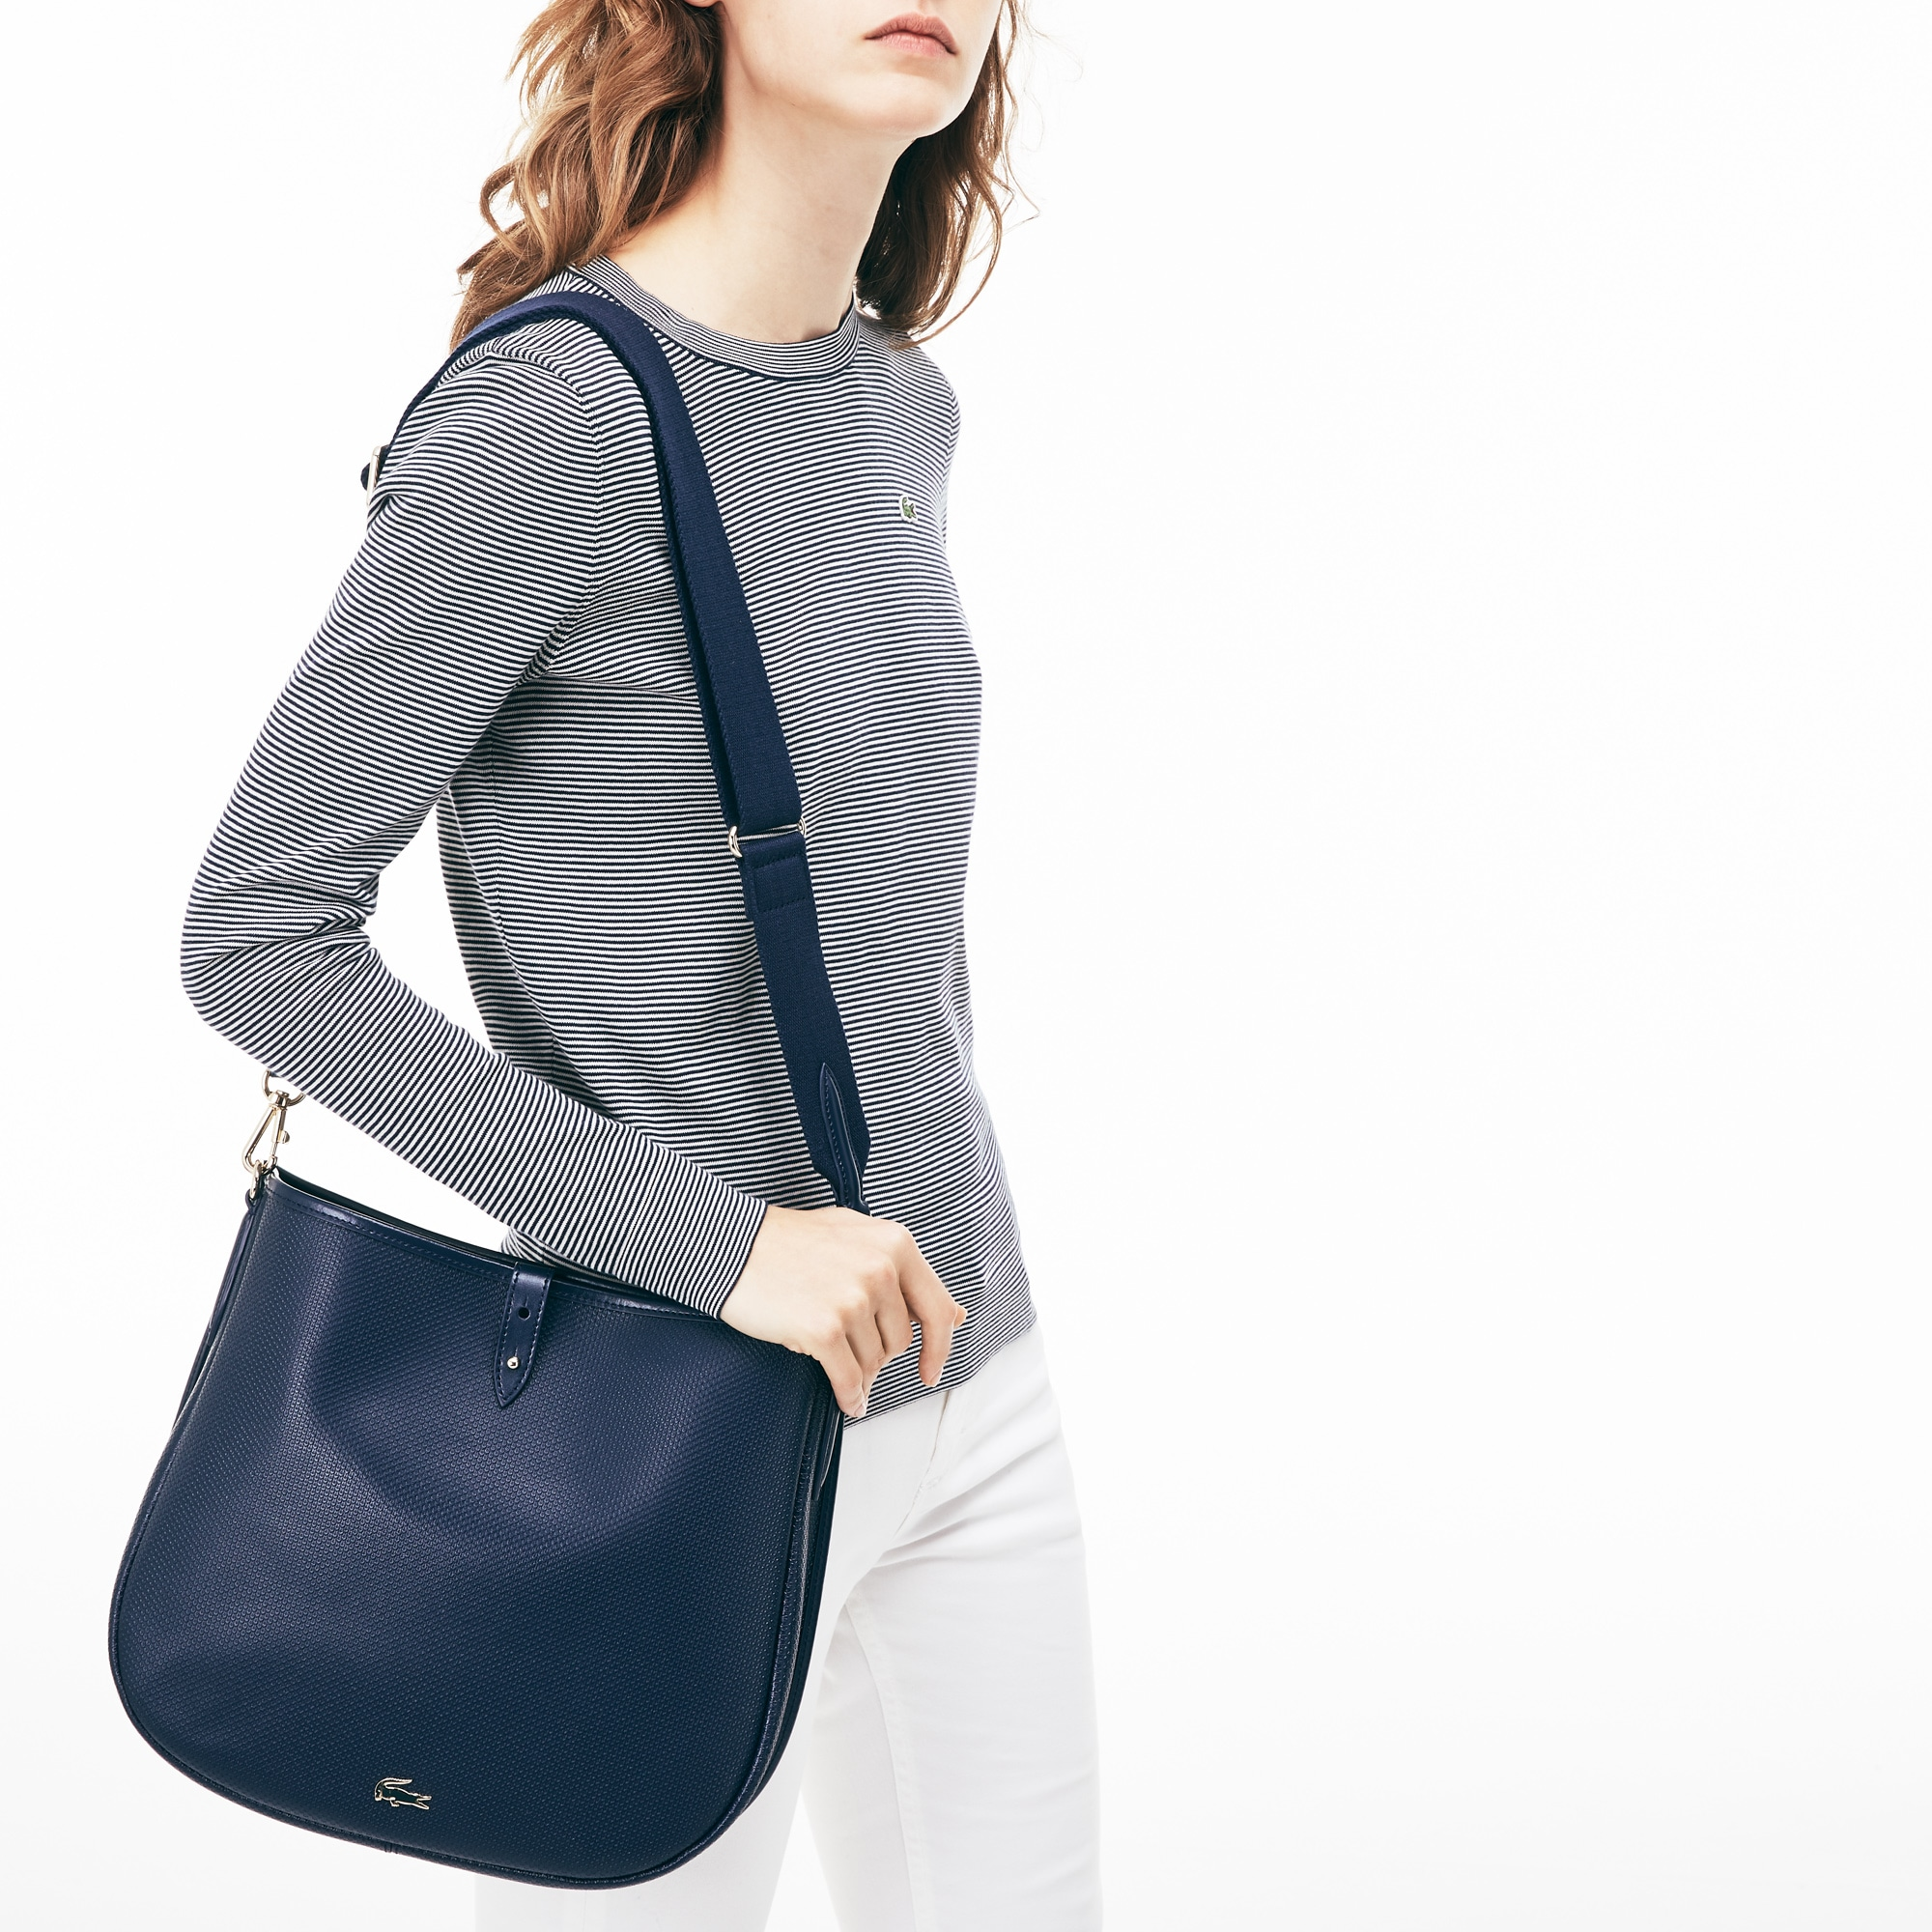 Lacoste WOMEN'S CHANTACO PIQUÉ LEATHER HOBO BAG